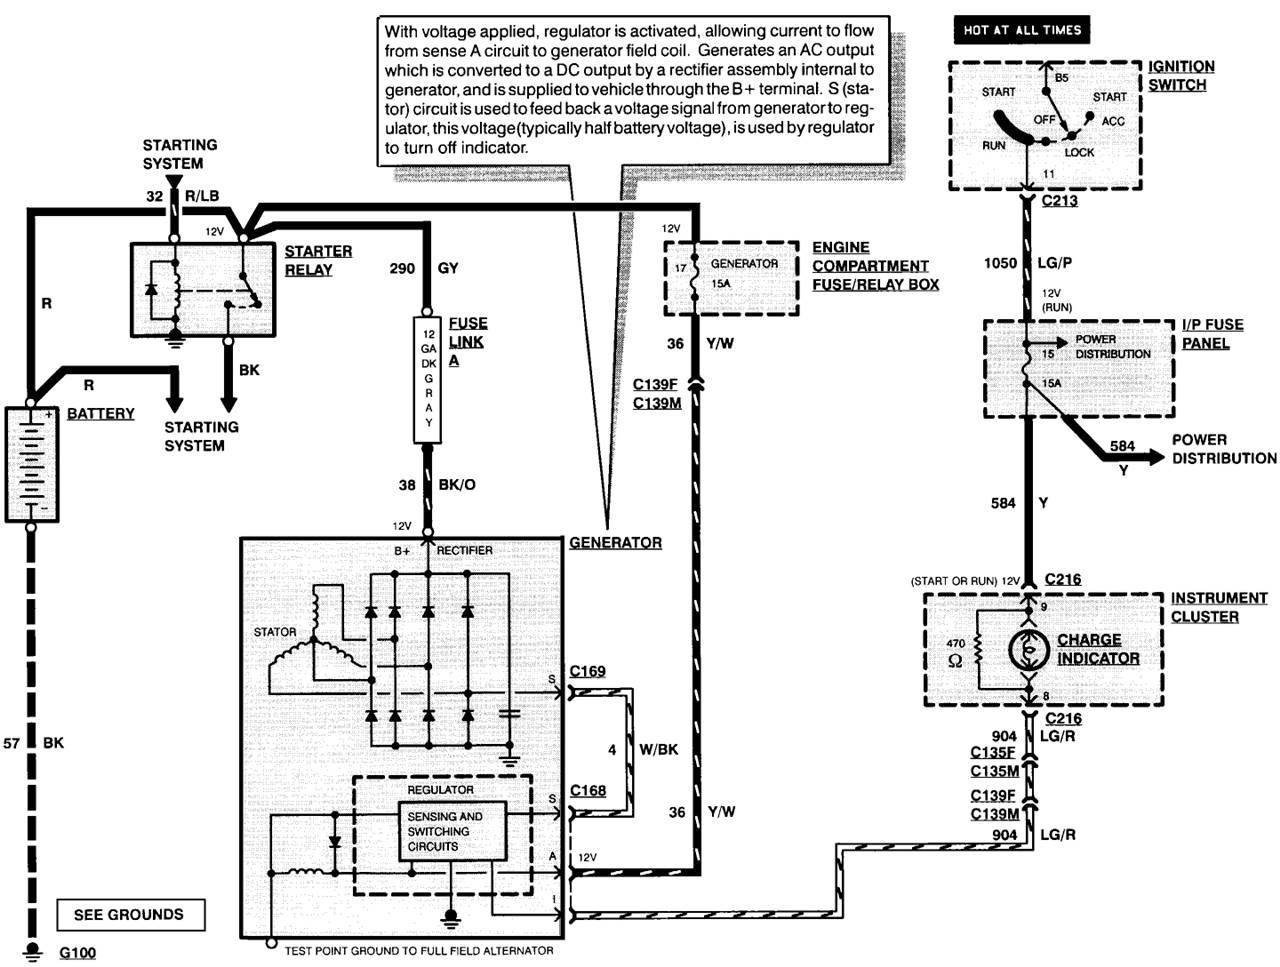 Inspiration Ford Alternator Wiring Diagram Ford Alternator Wiring Diagram Internal Regulator Ford Alternator Wiring Diagram B Alternator Diagram Diagram Design